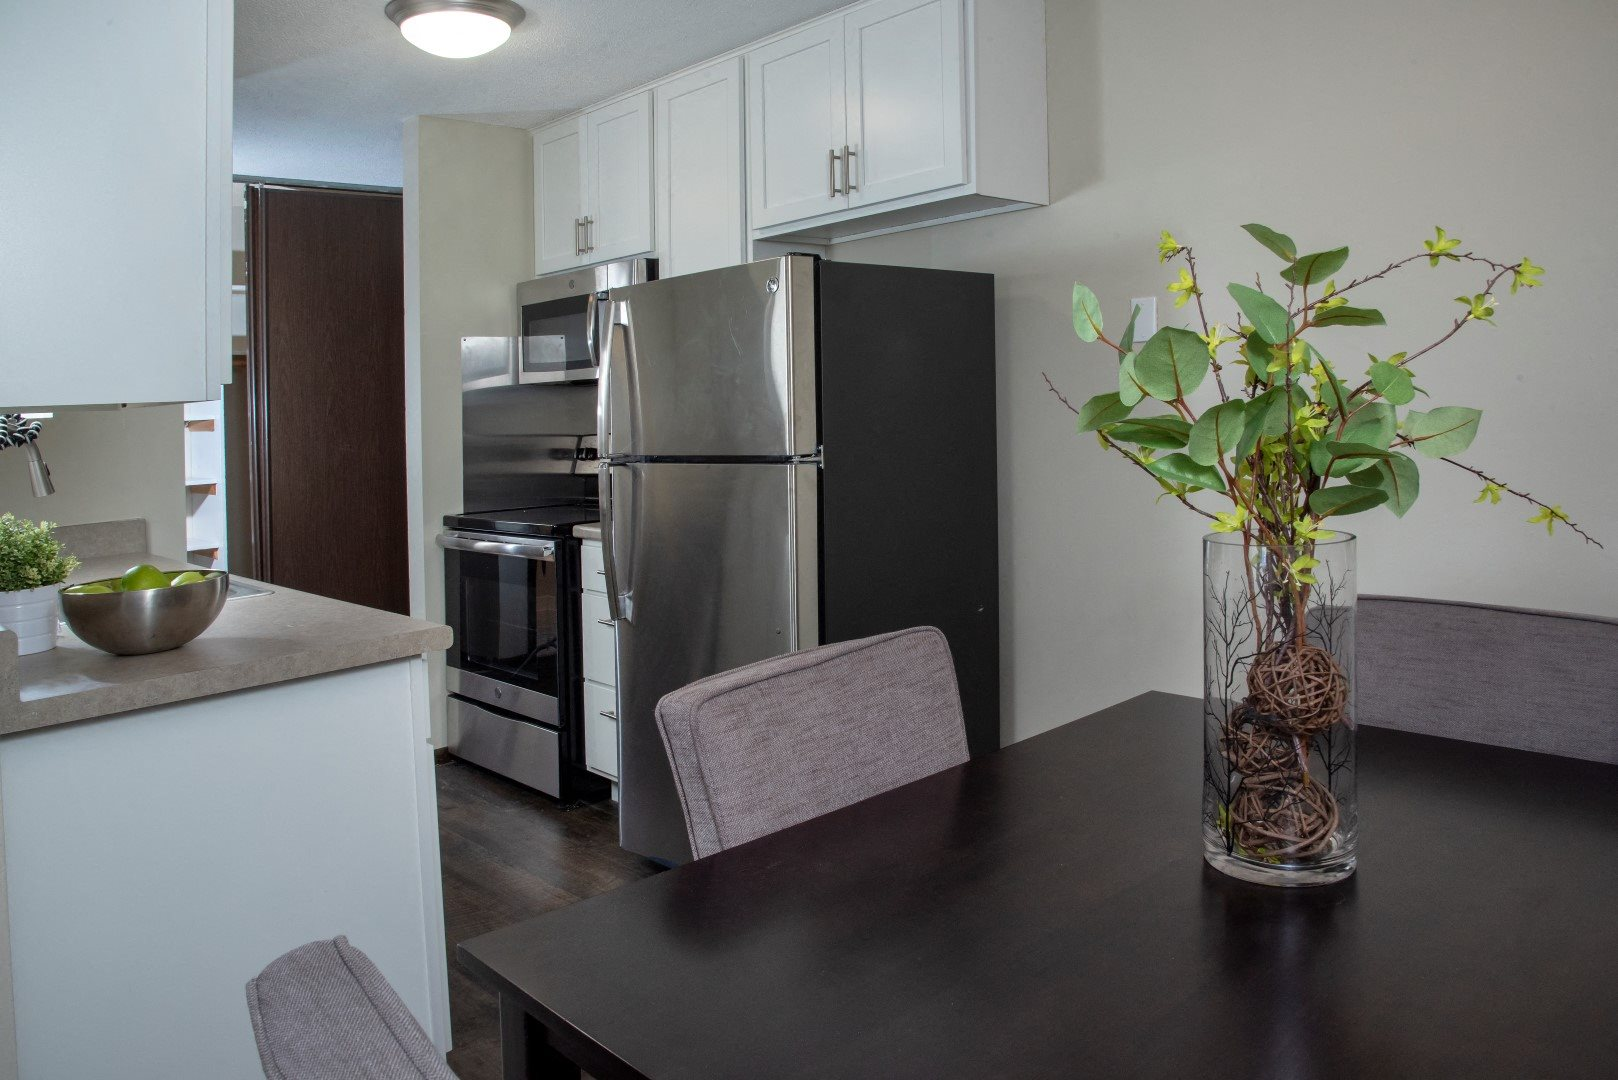 Spacious Countertops and New Appliances in Kitchen of Minneapolis Apartment